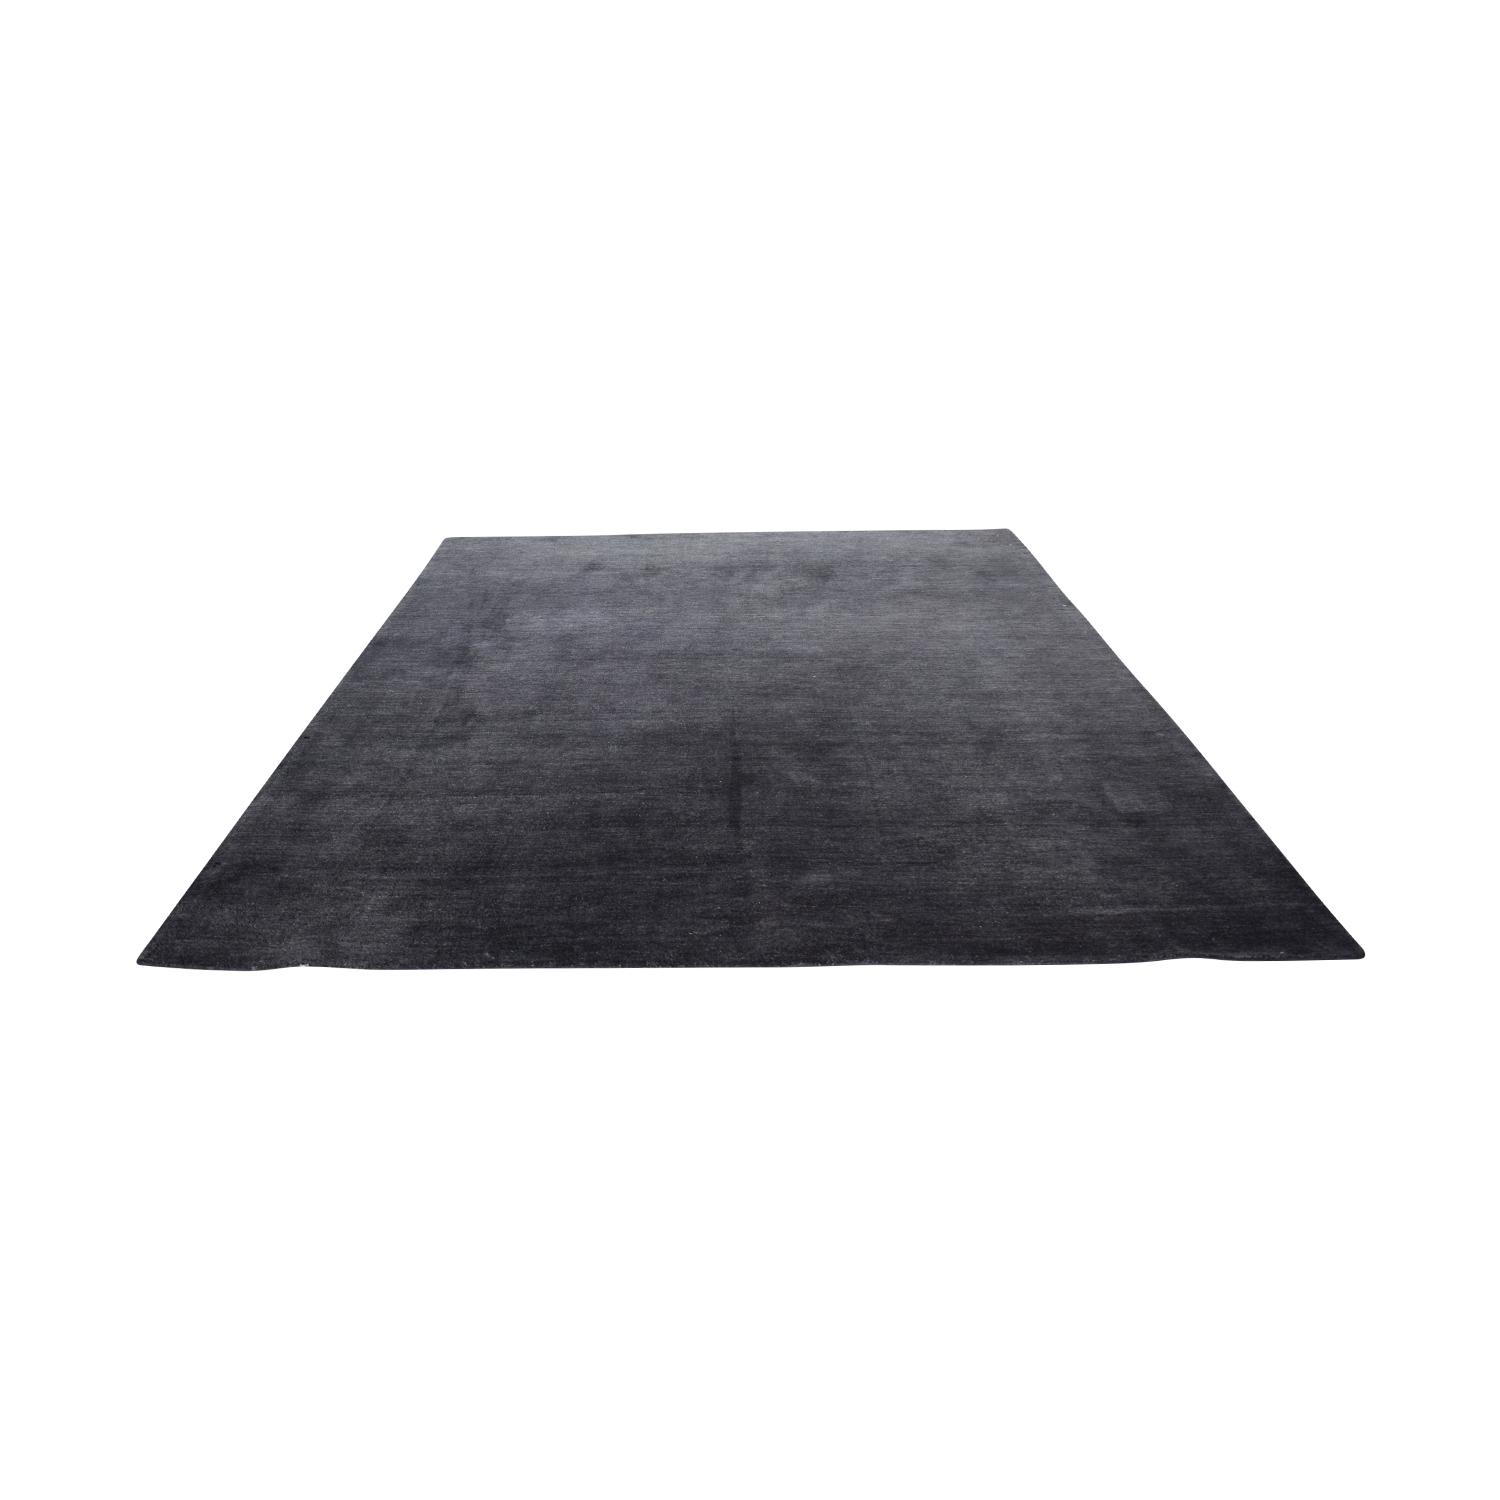 Crate & Barrel Baxter Black Rug Crate & Barrel